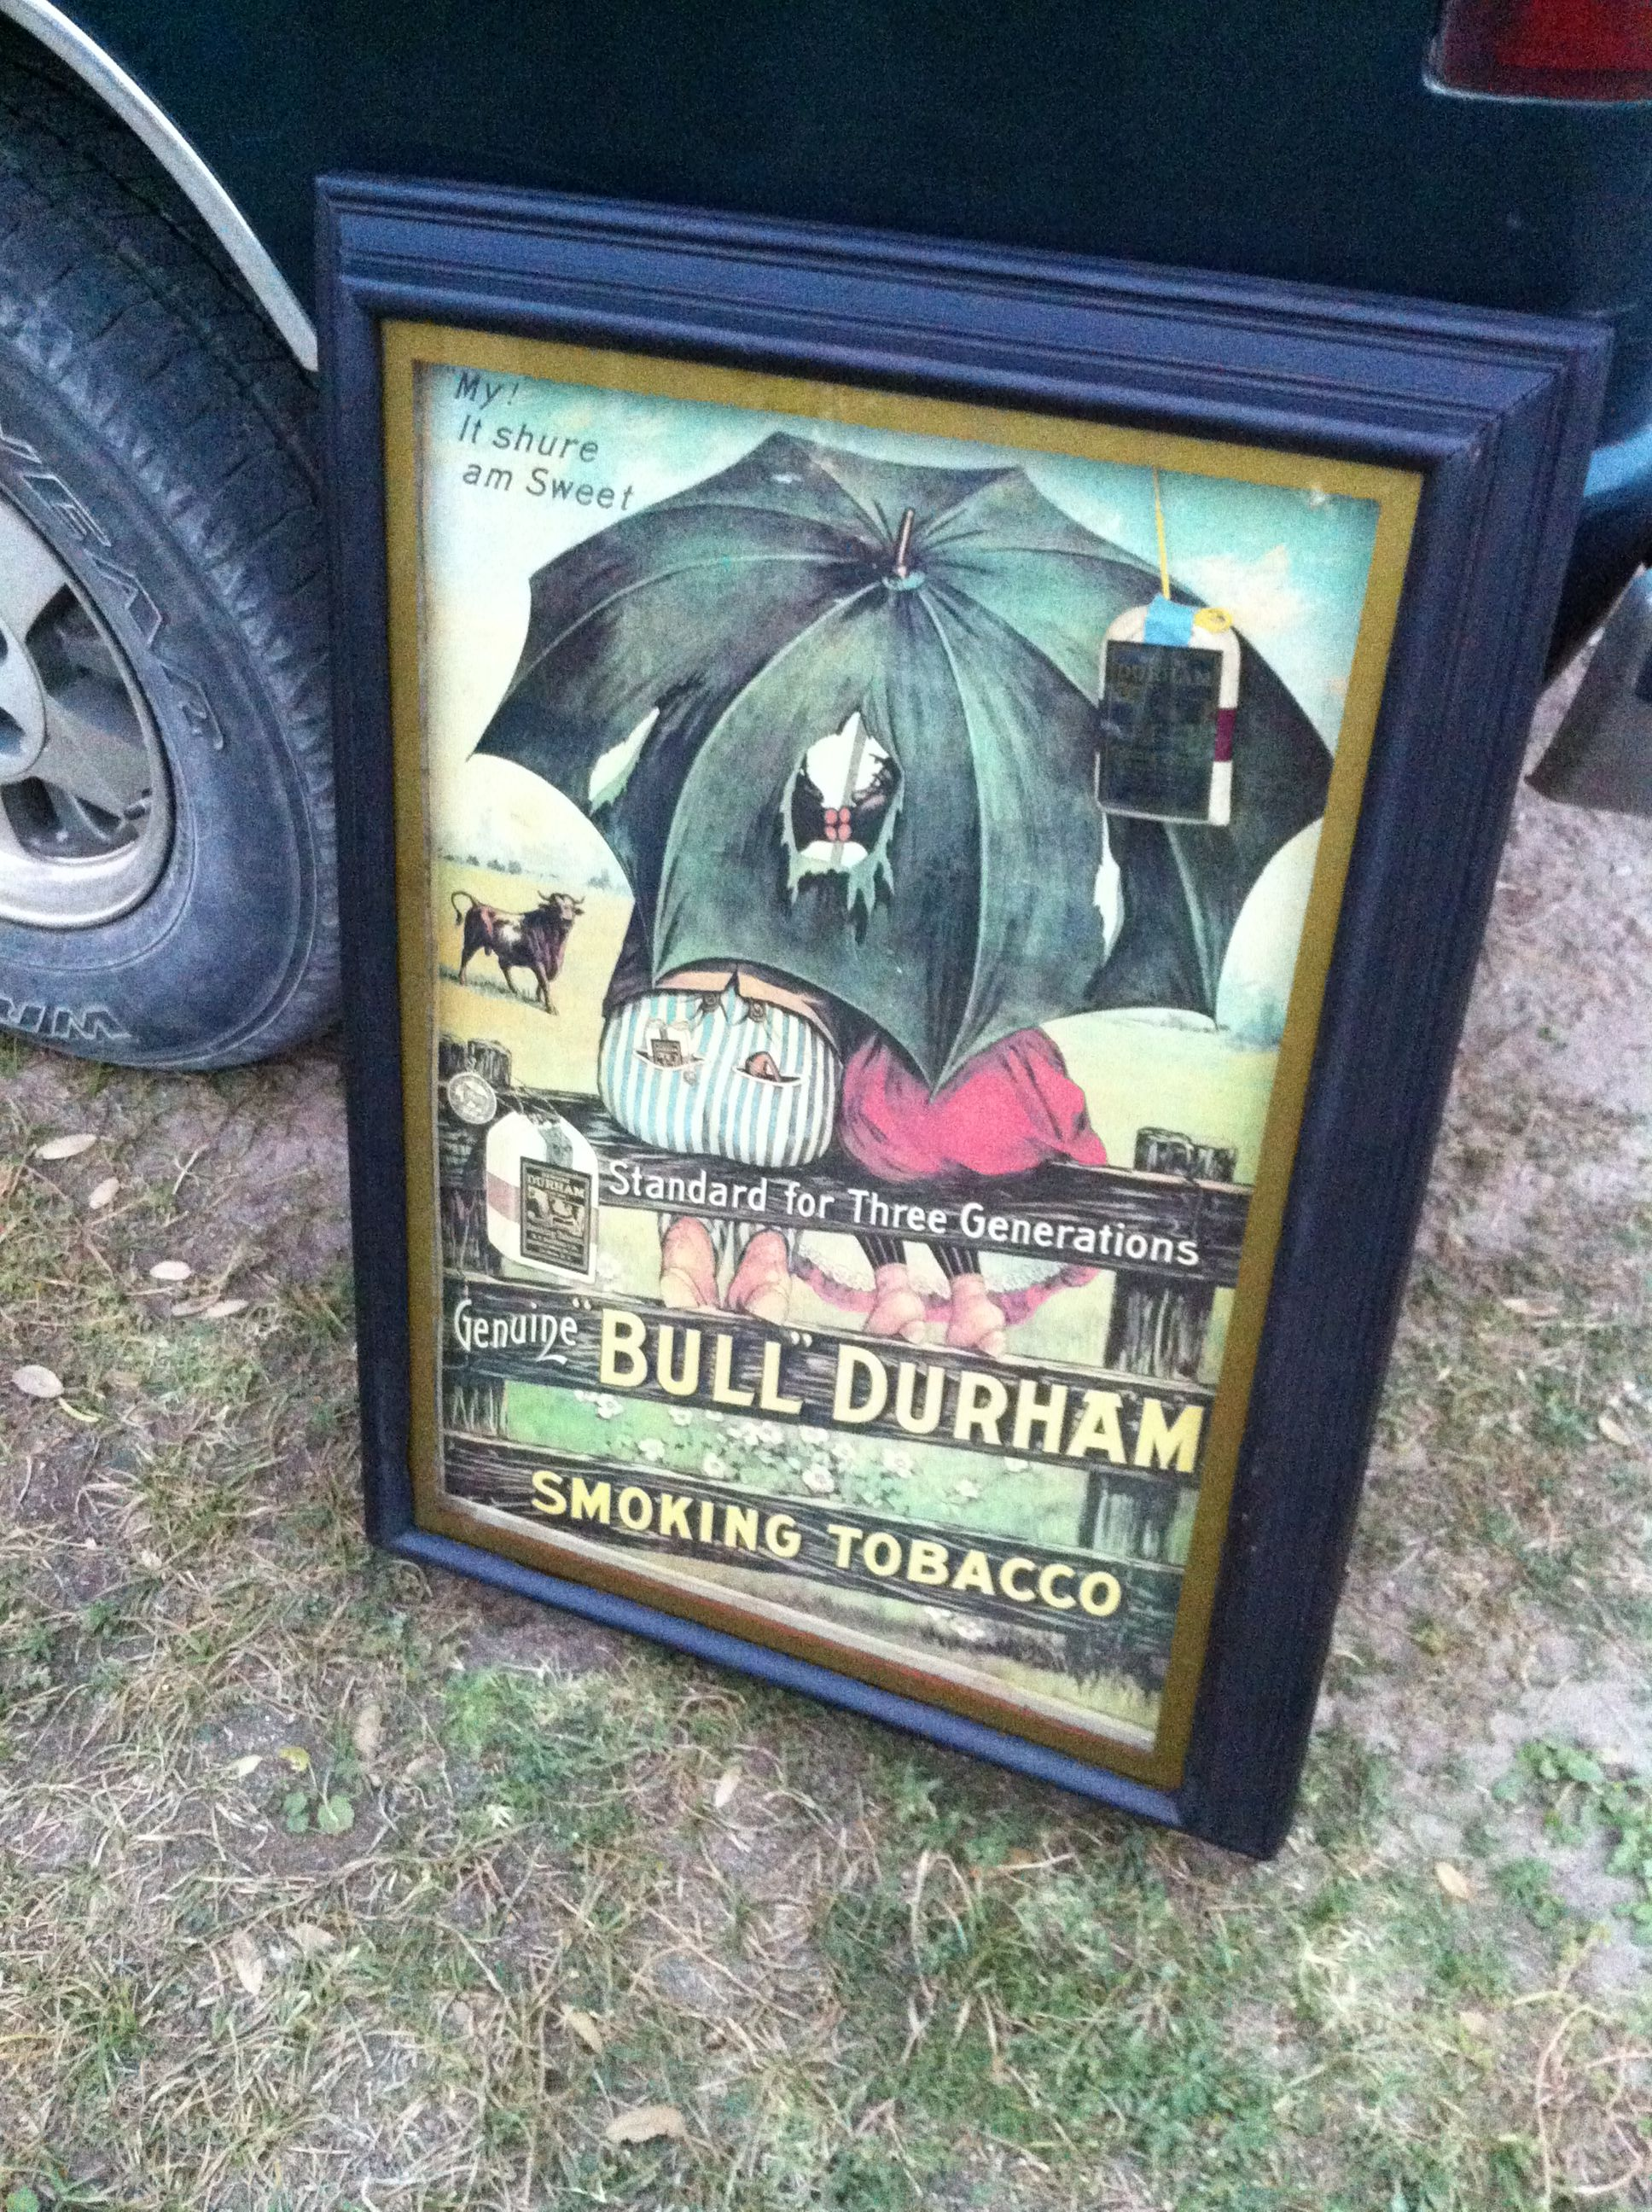 Vintage Bull Durham advert shadow boxed with original pouch of Bull Durham inserted.